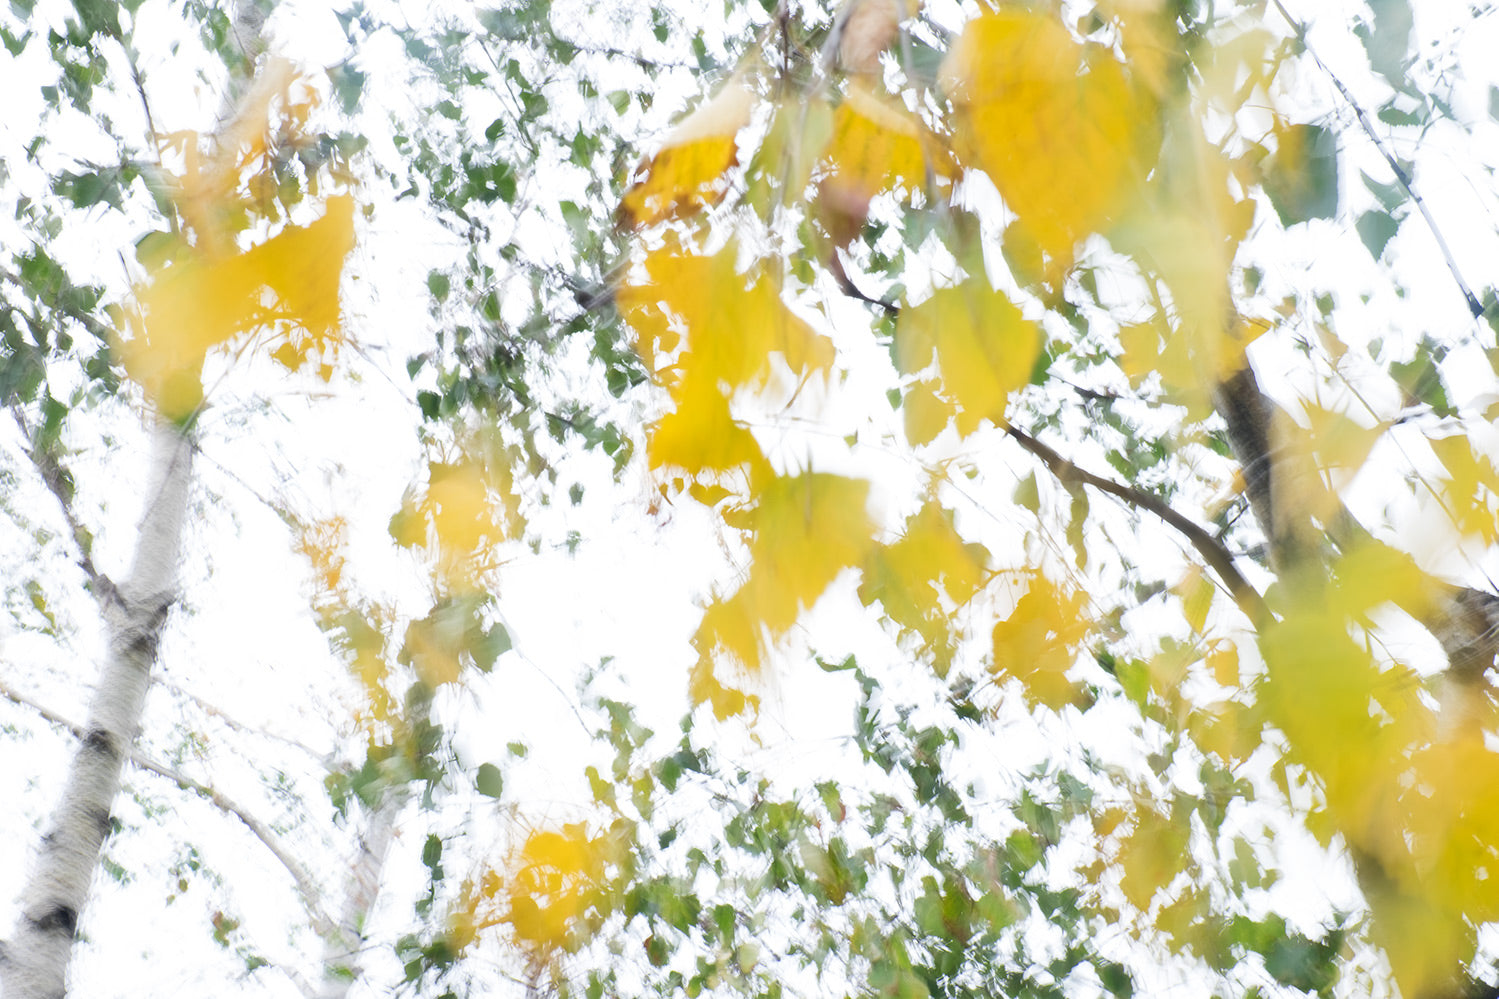 Silver Birch trees in front of the Tate Modern, taken with intentional camera movement (ICM). The yellow leaves and green foliage stand out against the white sky.